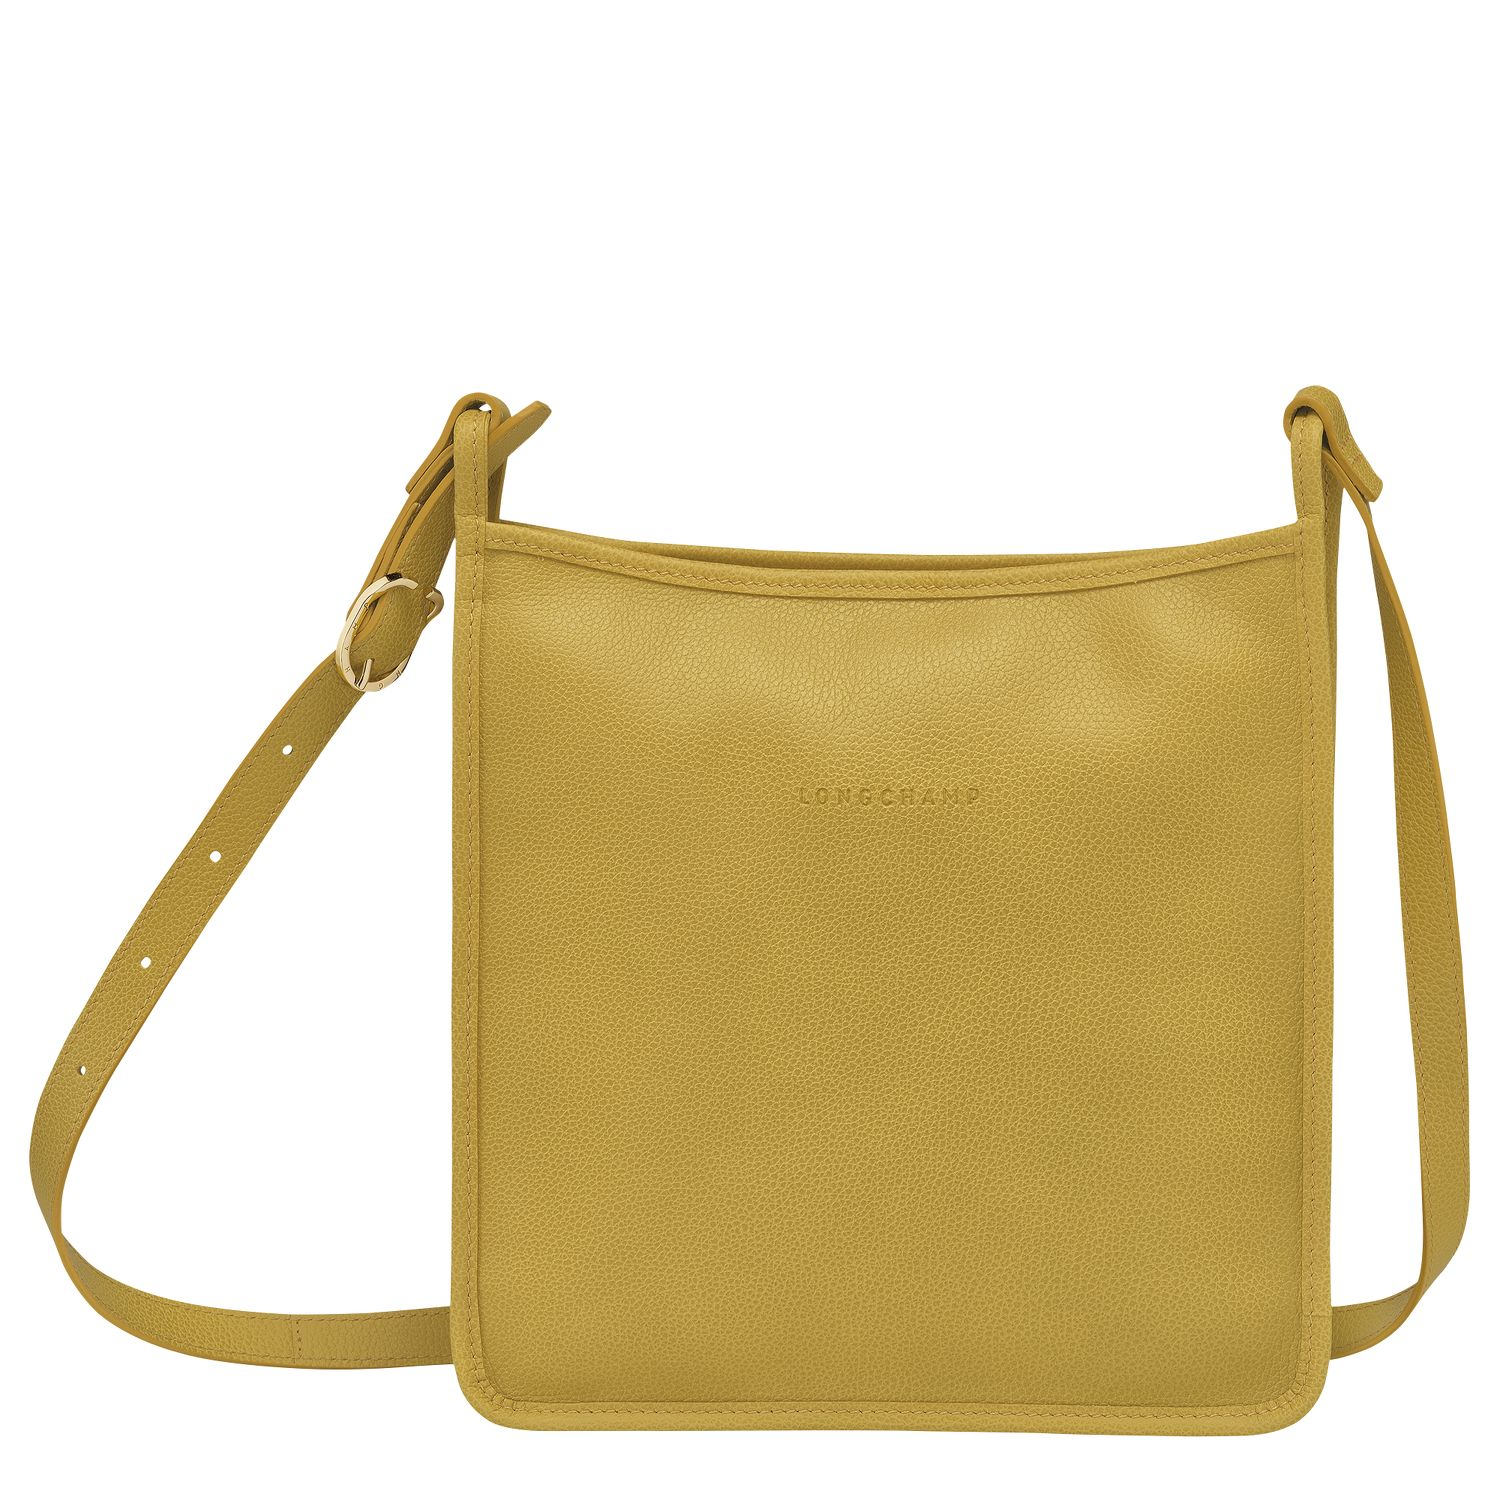 Le-Foulonne-Zipped-Crossbody-Bag-Large-in-Mimosa - THE EDGE SINGAPORE